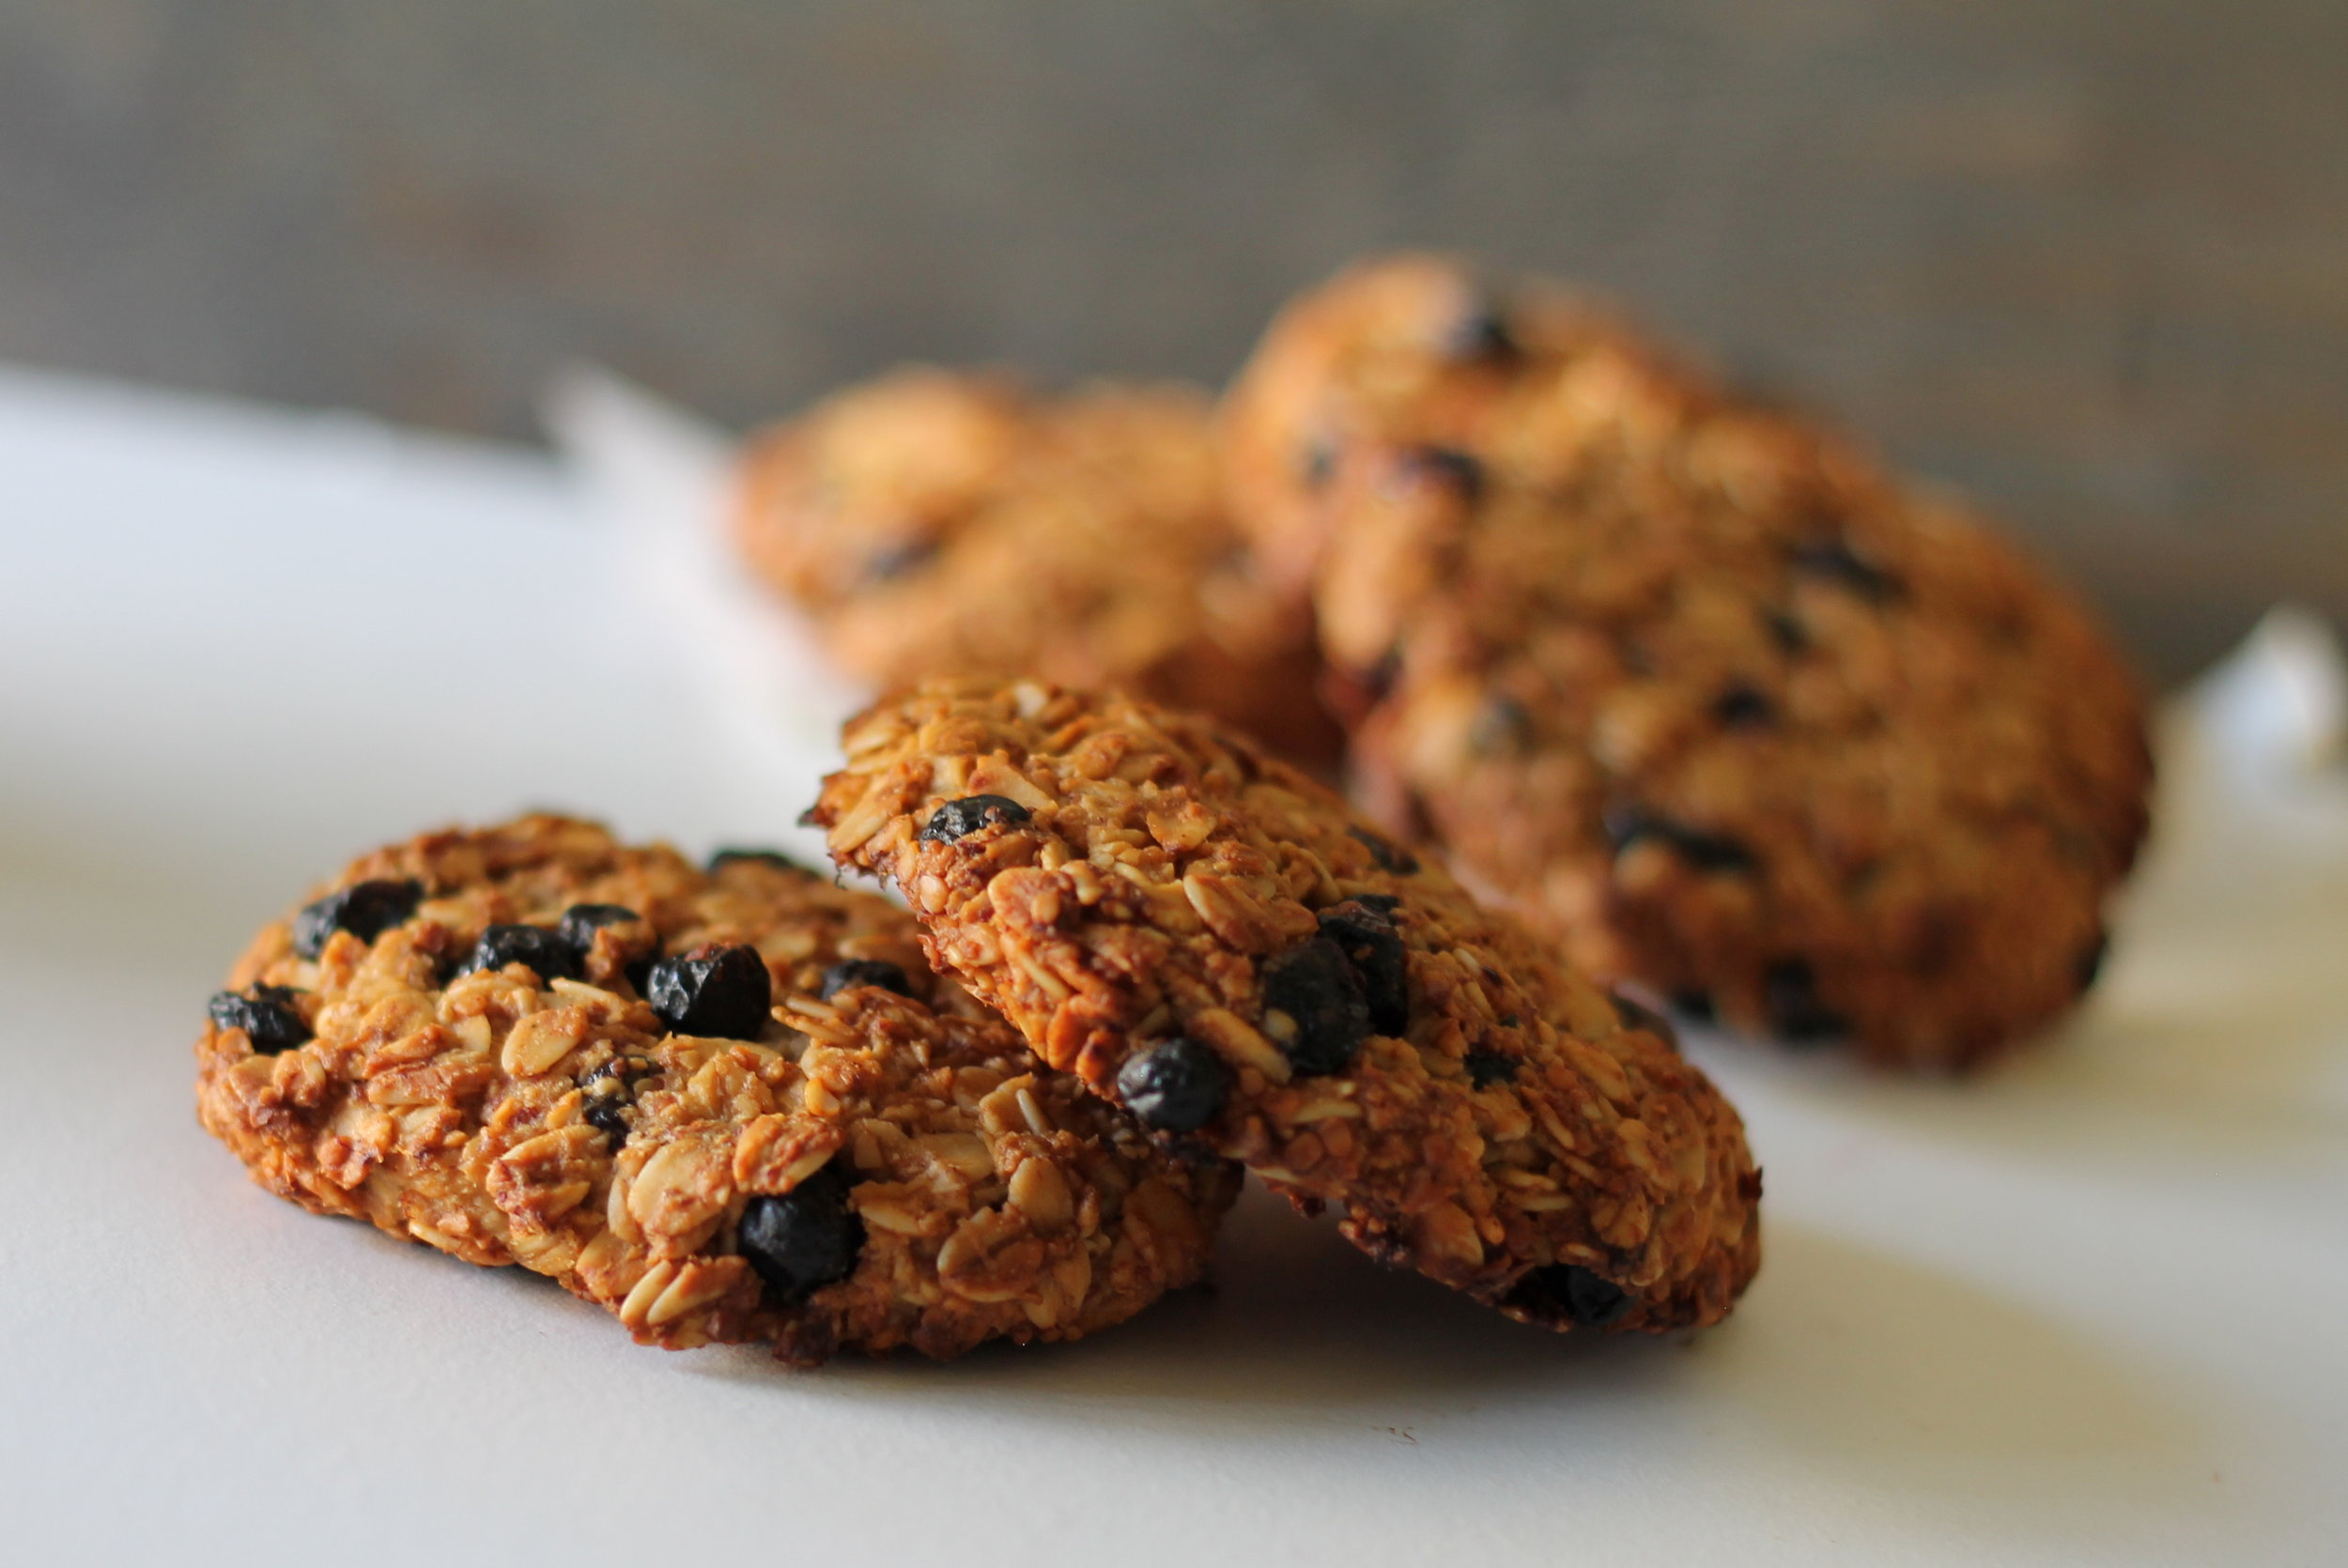 Wildblueberry Oatmeal Cookies are great for grab n' go breakfast or a snack. They are packed with nutritious ingredients like oats, almond flour, hemp seeds, and cranberries. Naturally sweetened, vegan, and gluten-free!